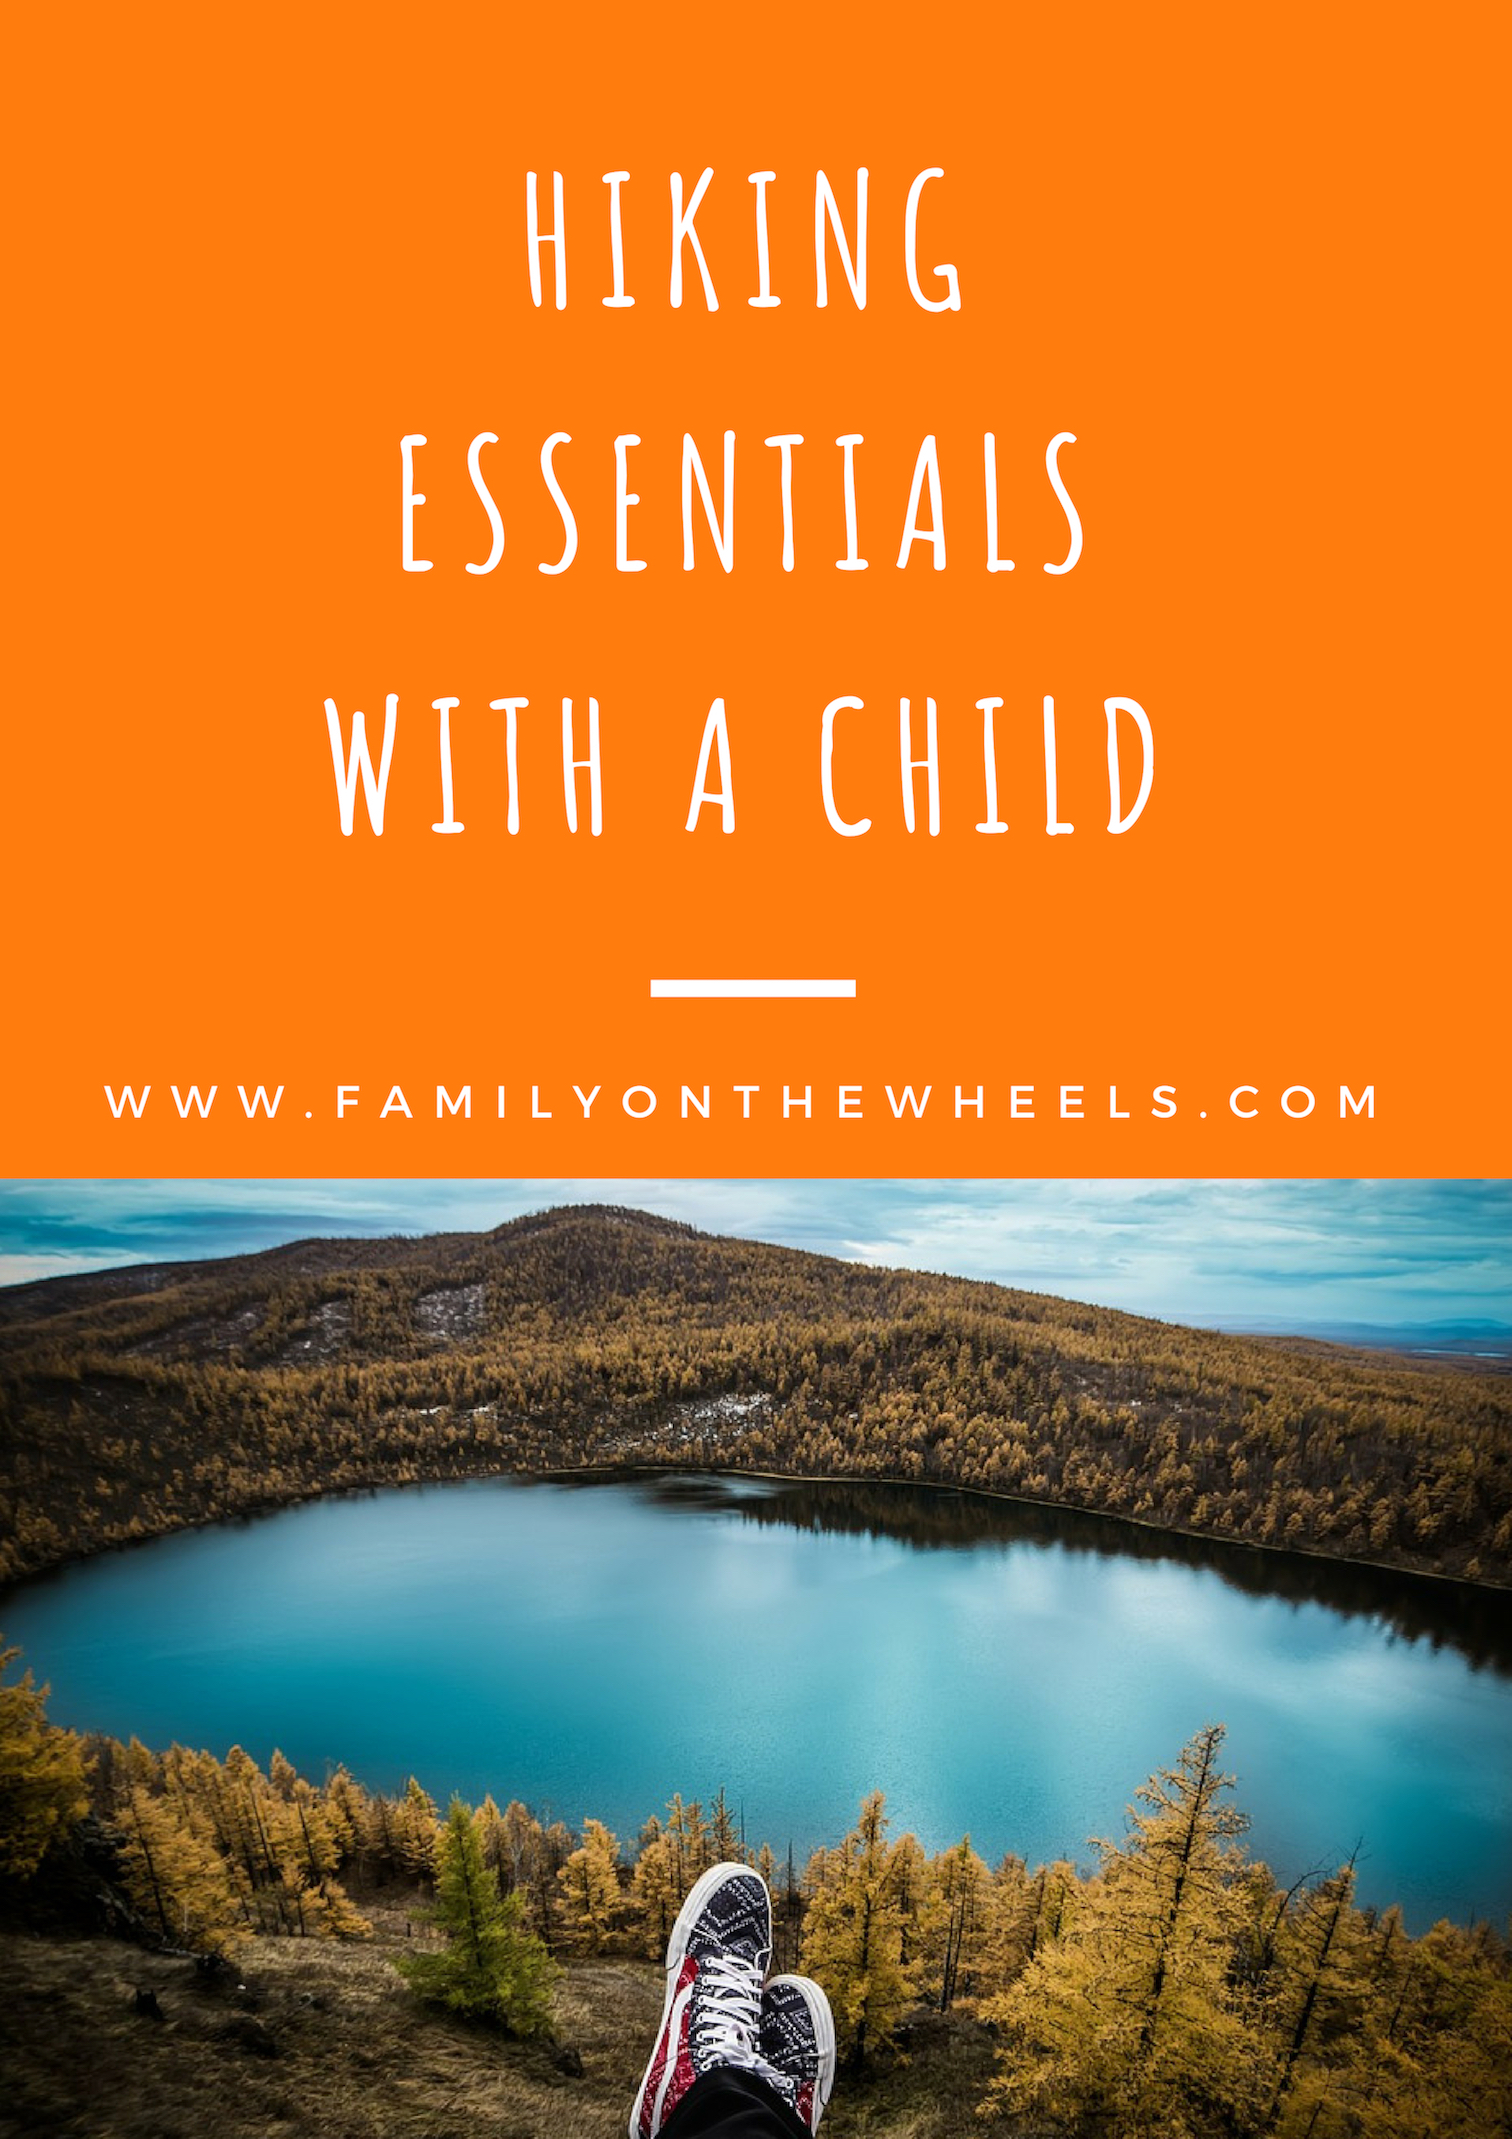 Are you planning to do a short hike with kids? Is it the first time? Then you need to know about some hiking essentials to help you throughout with kids. #hiking #trailrunners #runningshoes #homeshop18 #shoes #trekking